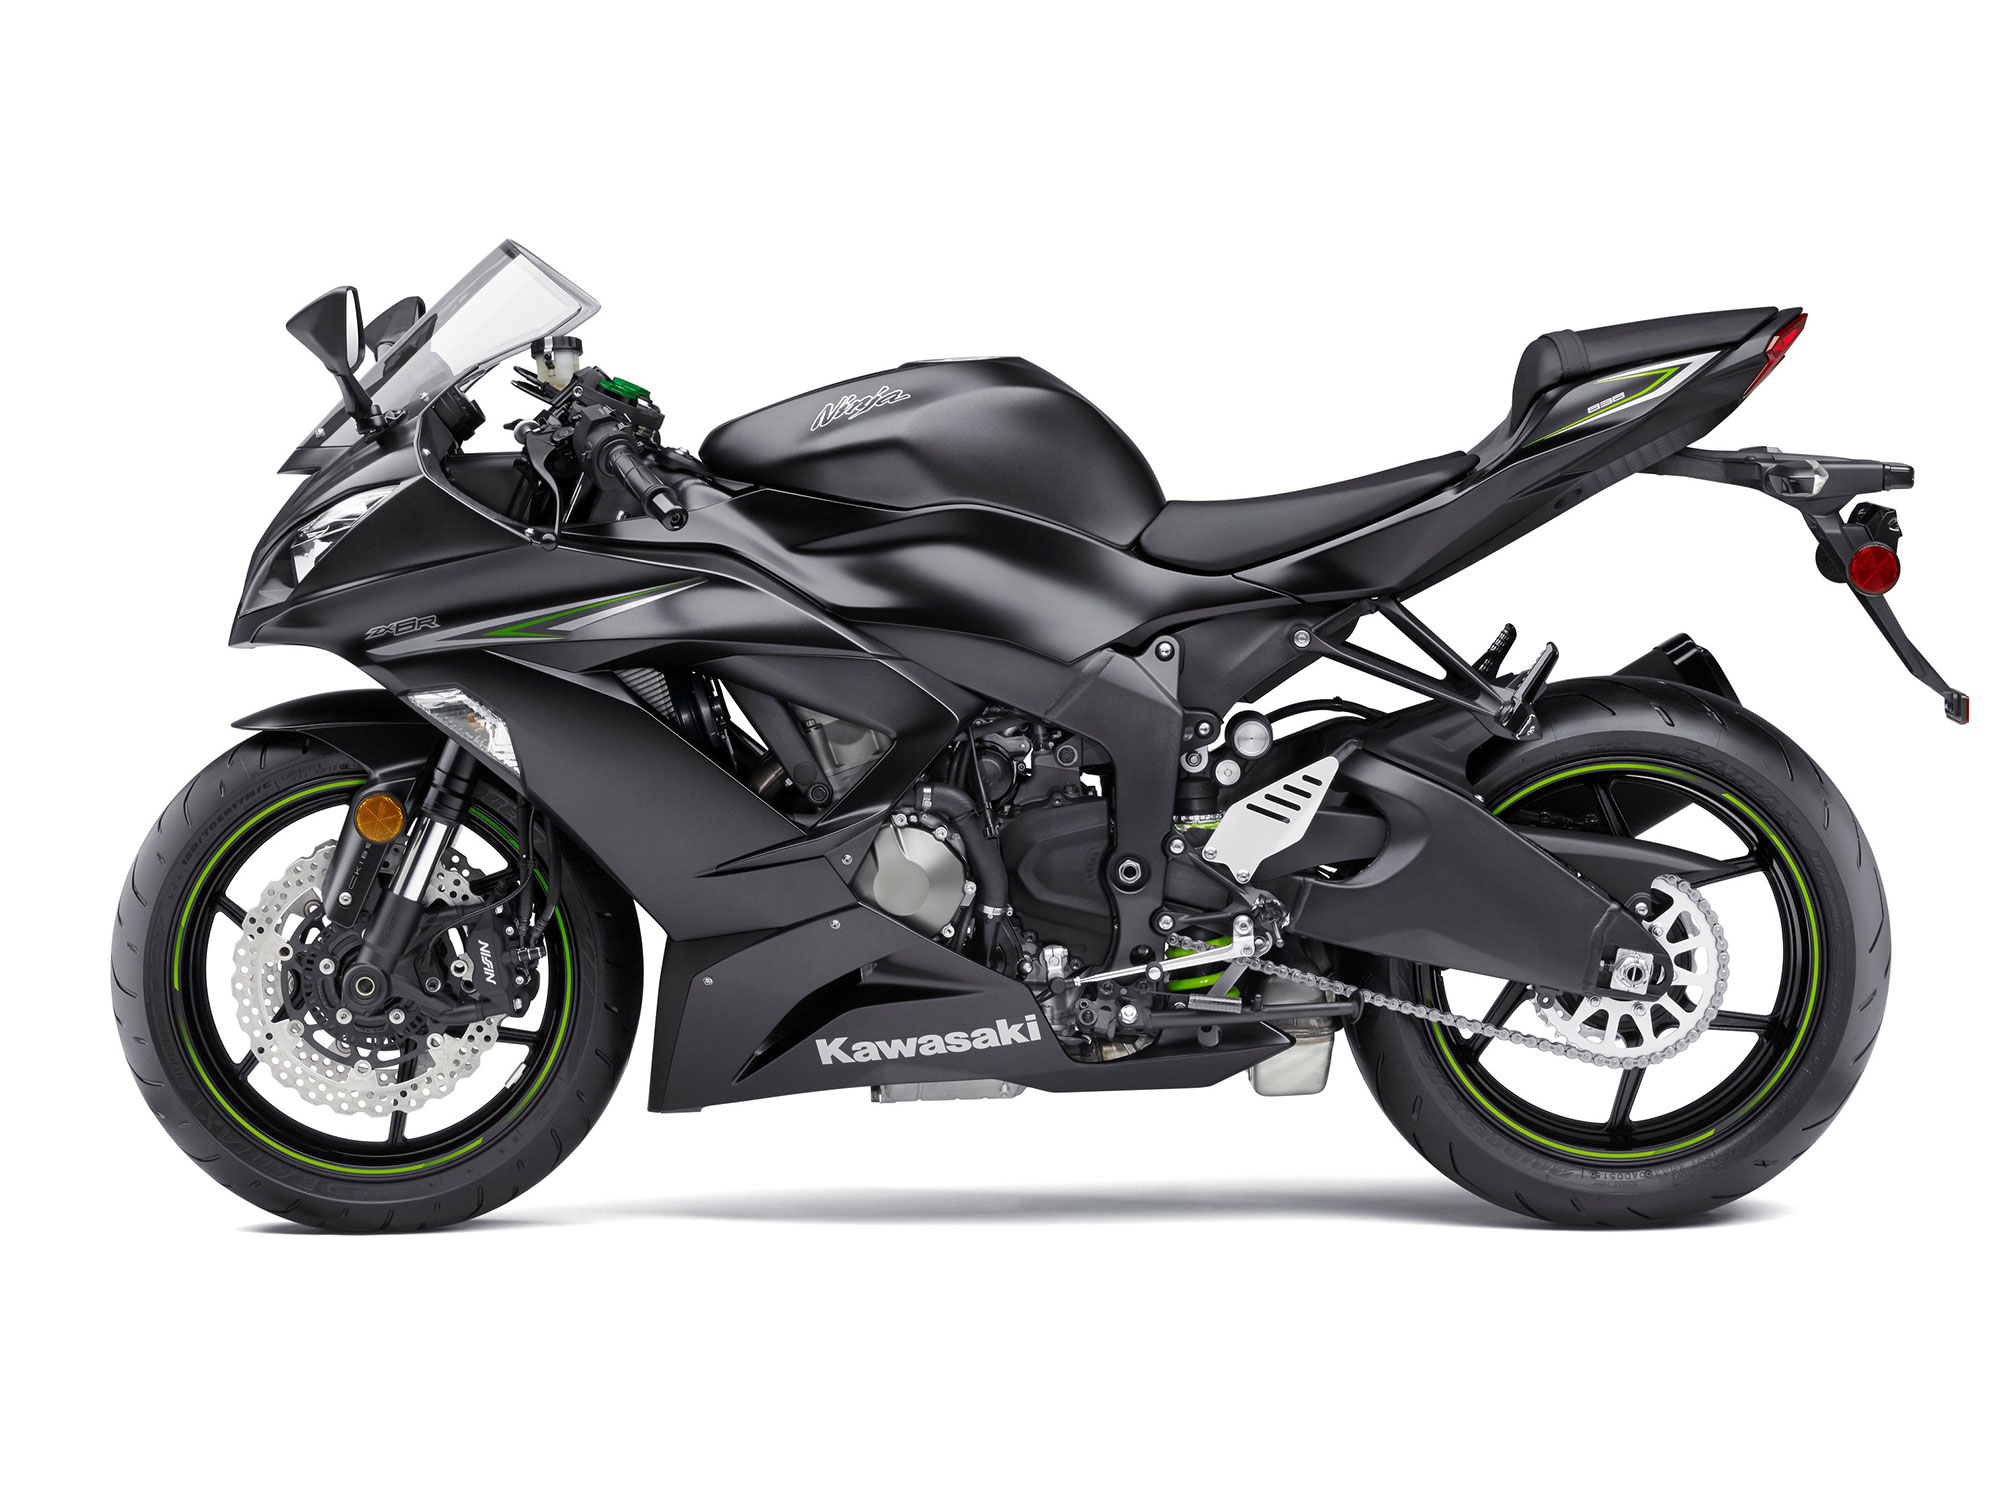 2016 kawasaki ninja zx 6r abs review. Black Bedroom Furniture Sets. Home Design Ideas